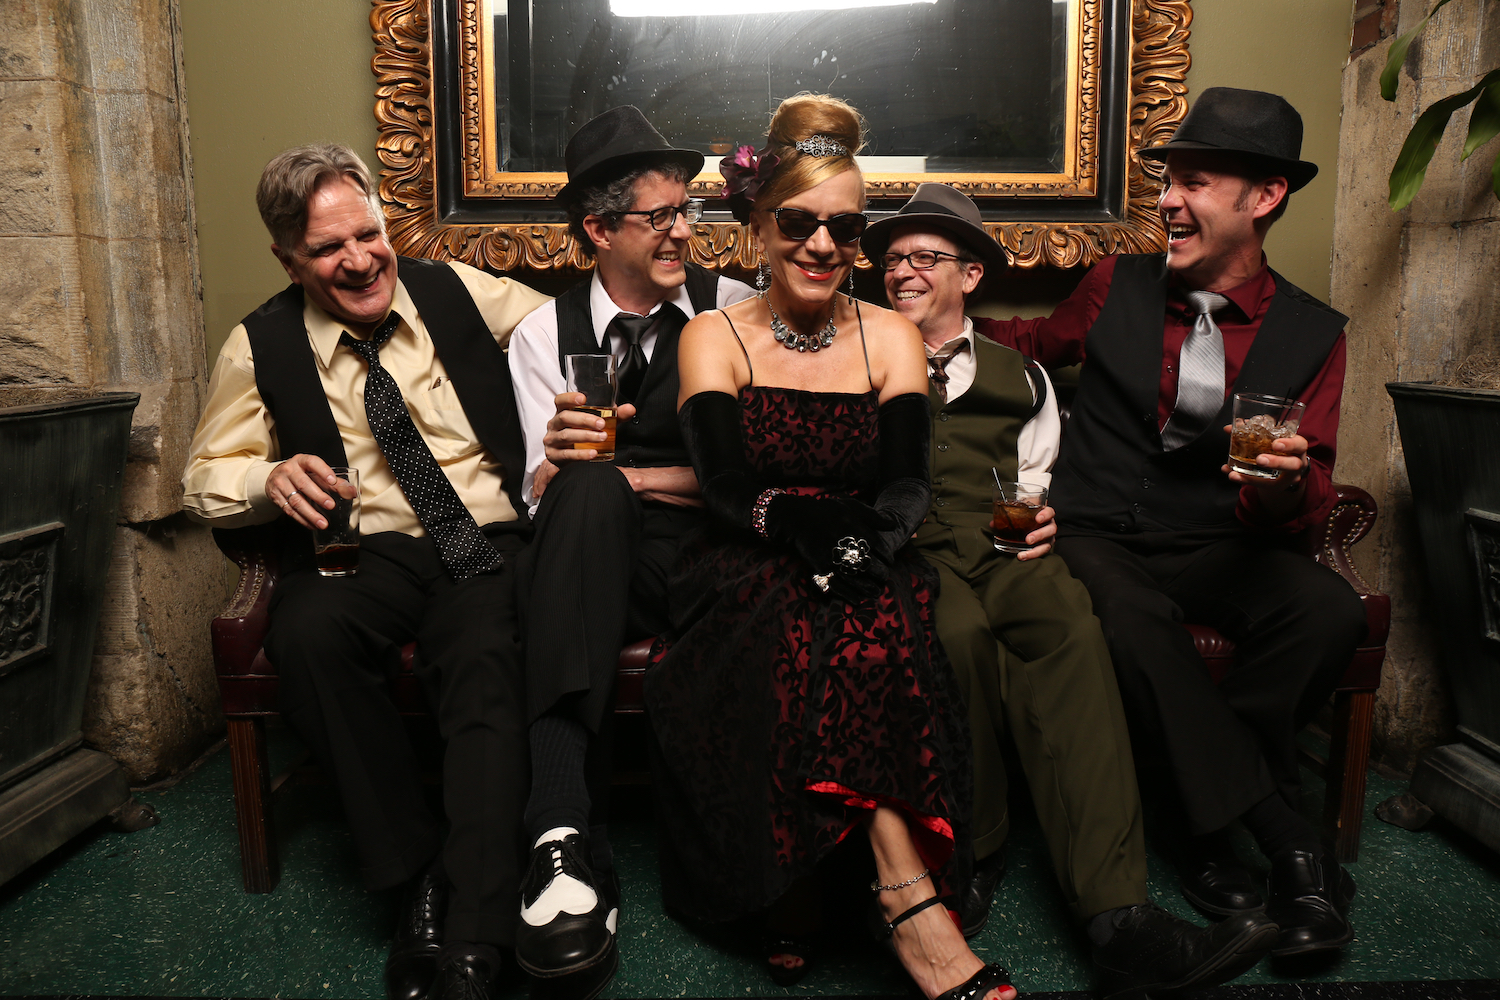 Eight O'Five Jive, Nashville TN-based swing band. photos by Bill Steber